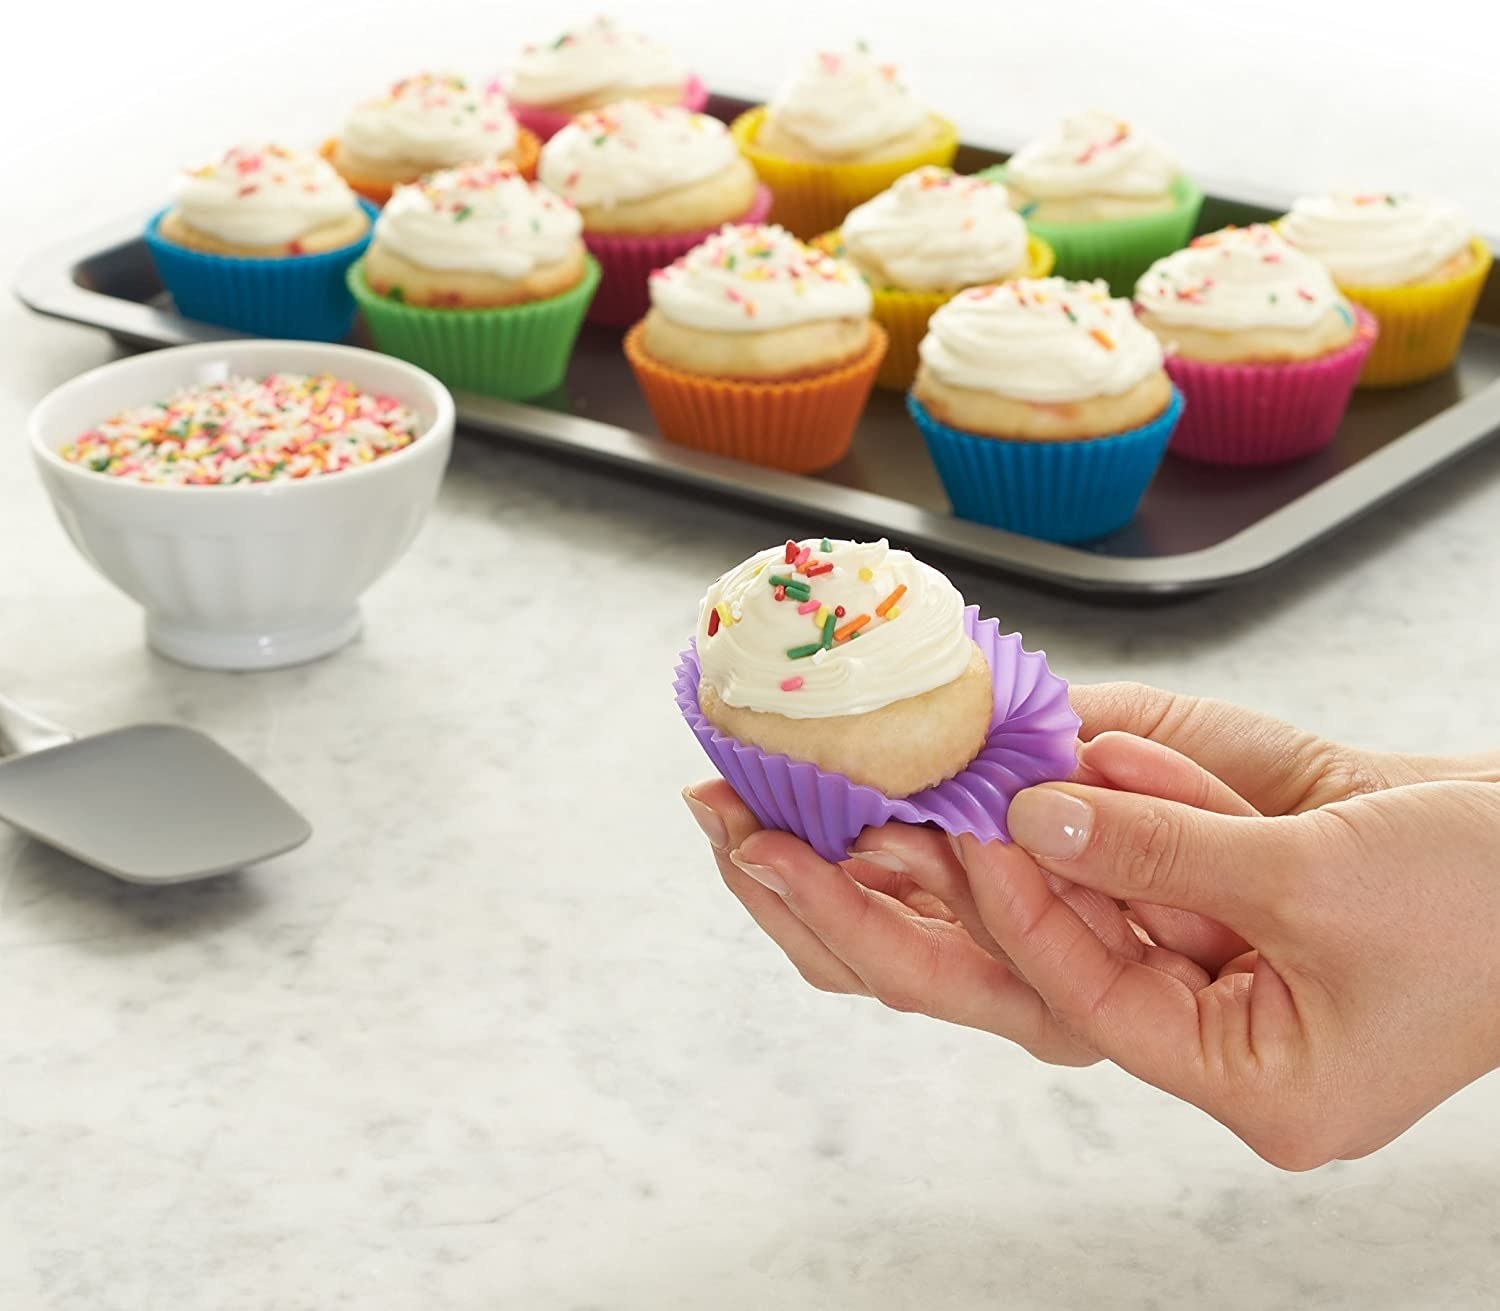 A person holding a tiny cupcake with a silicone baking cup